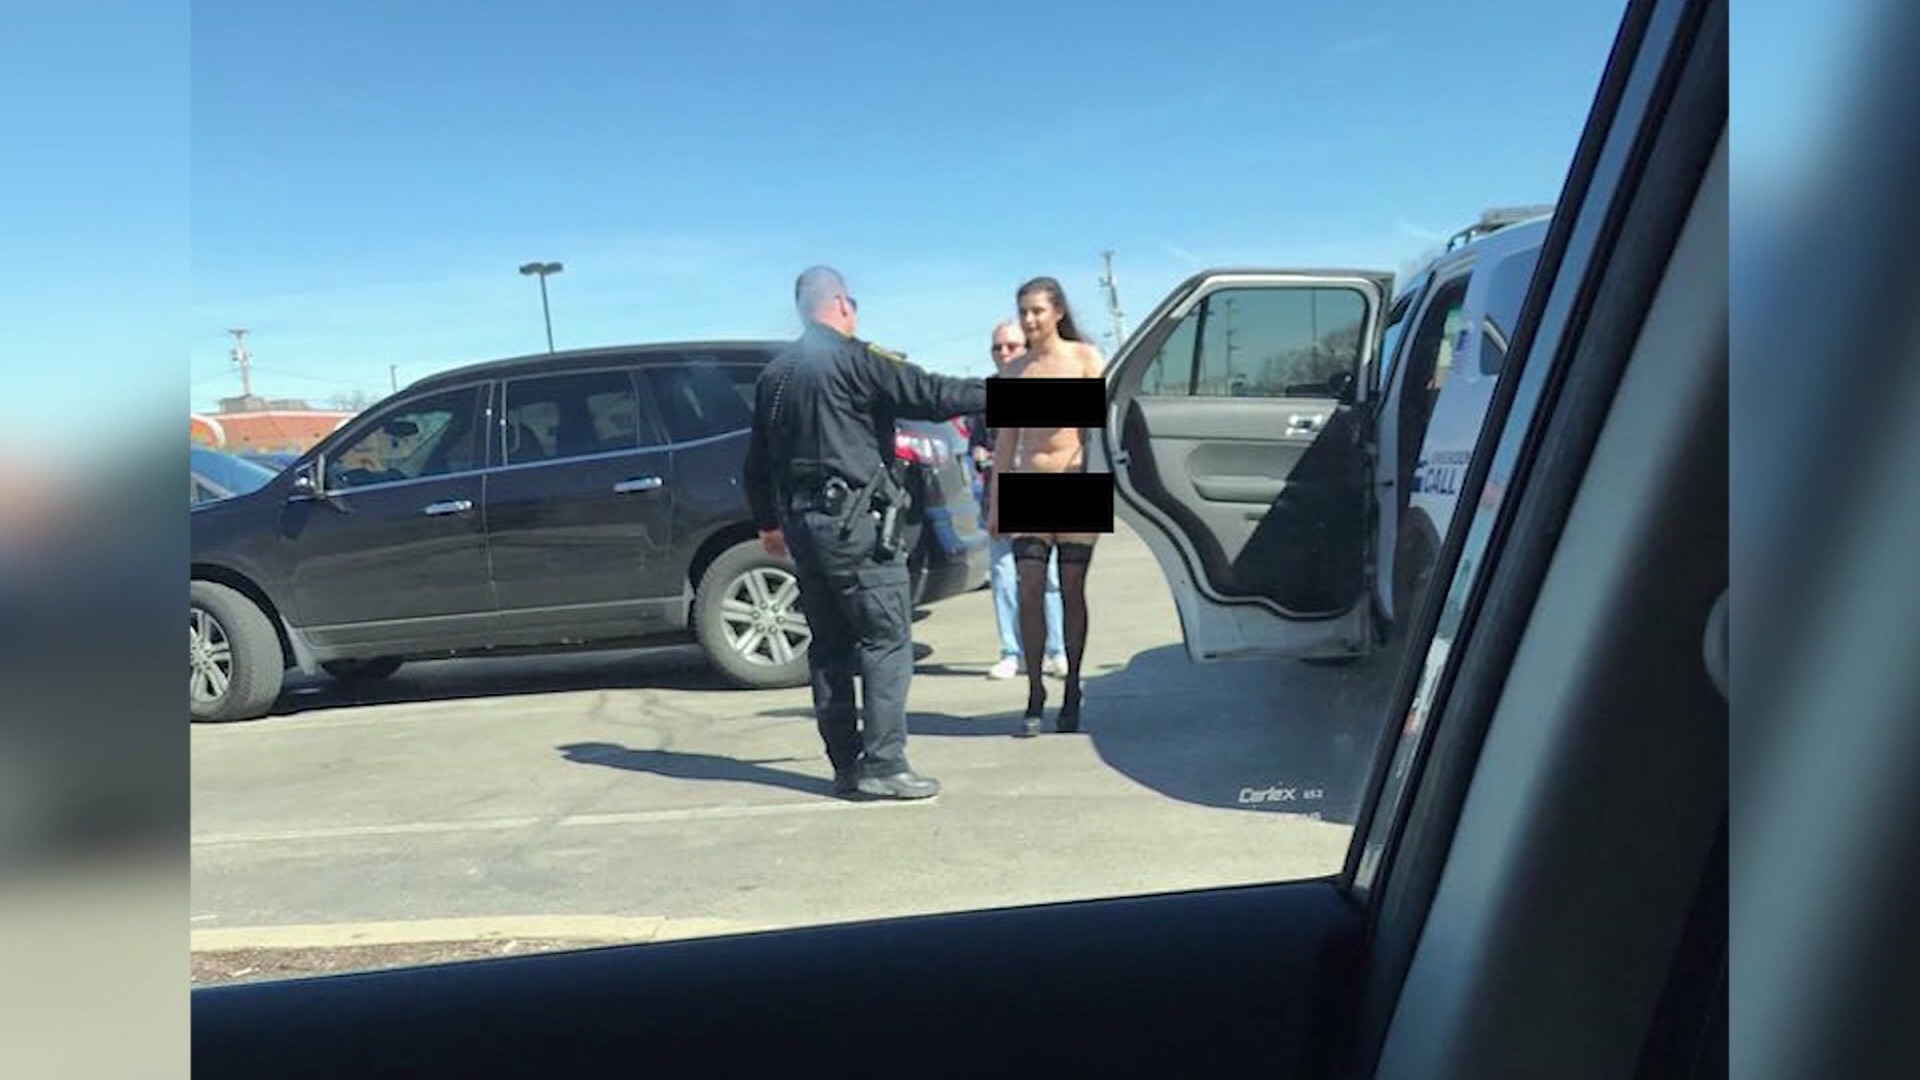 Nude model, photographer arrested at Pa. strip mall: Cops